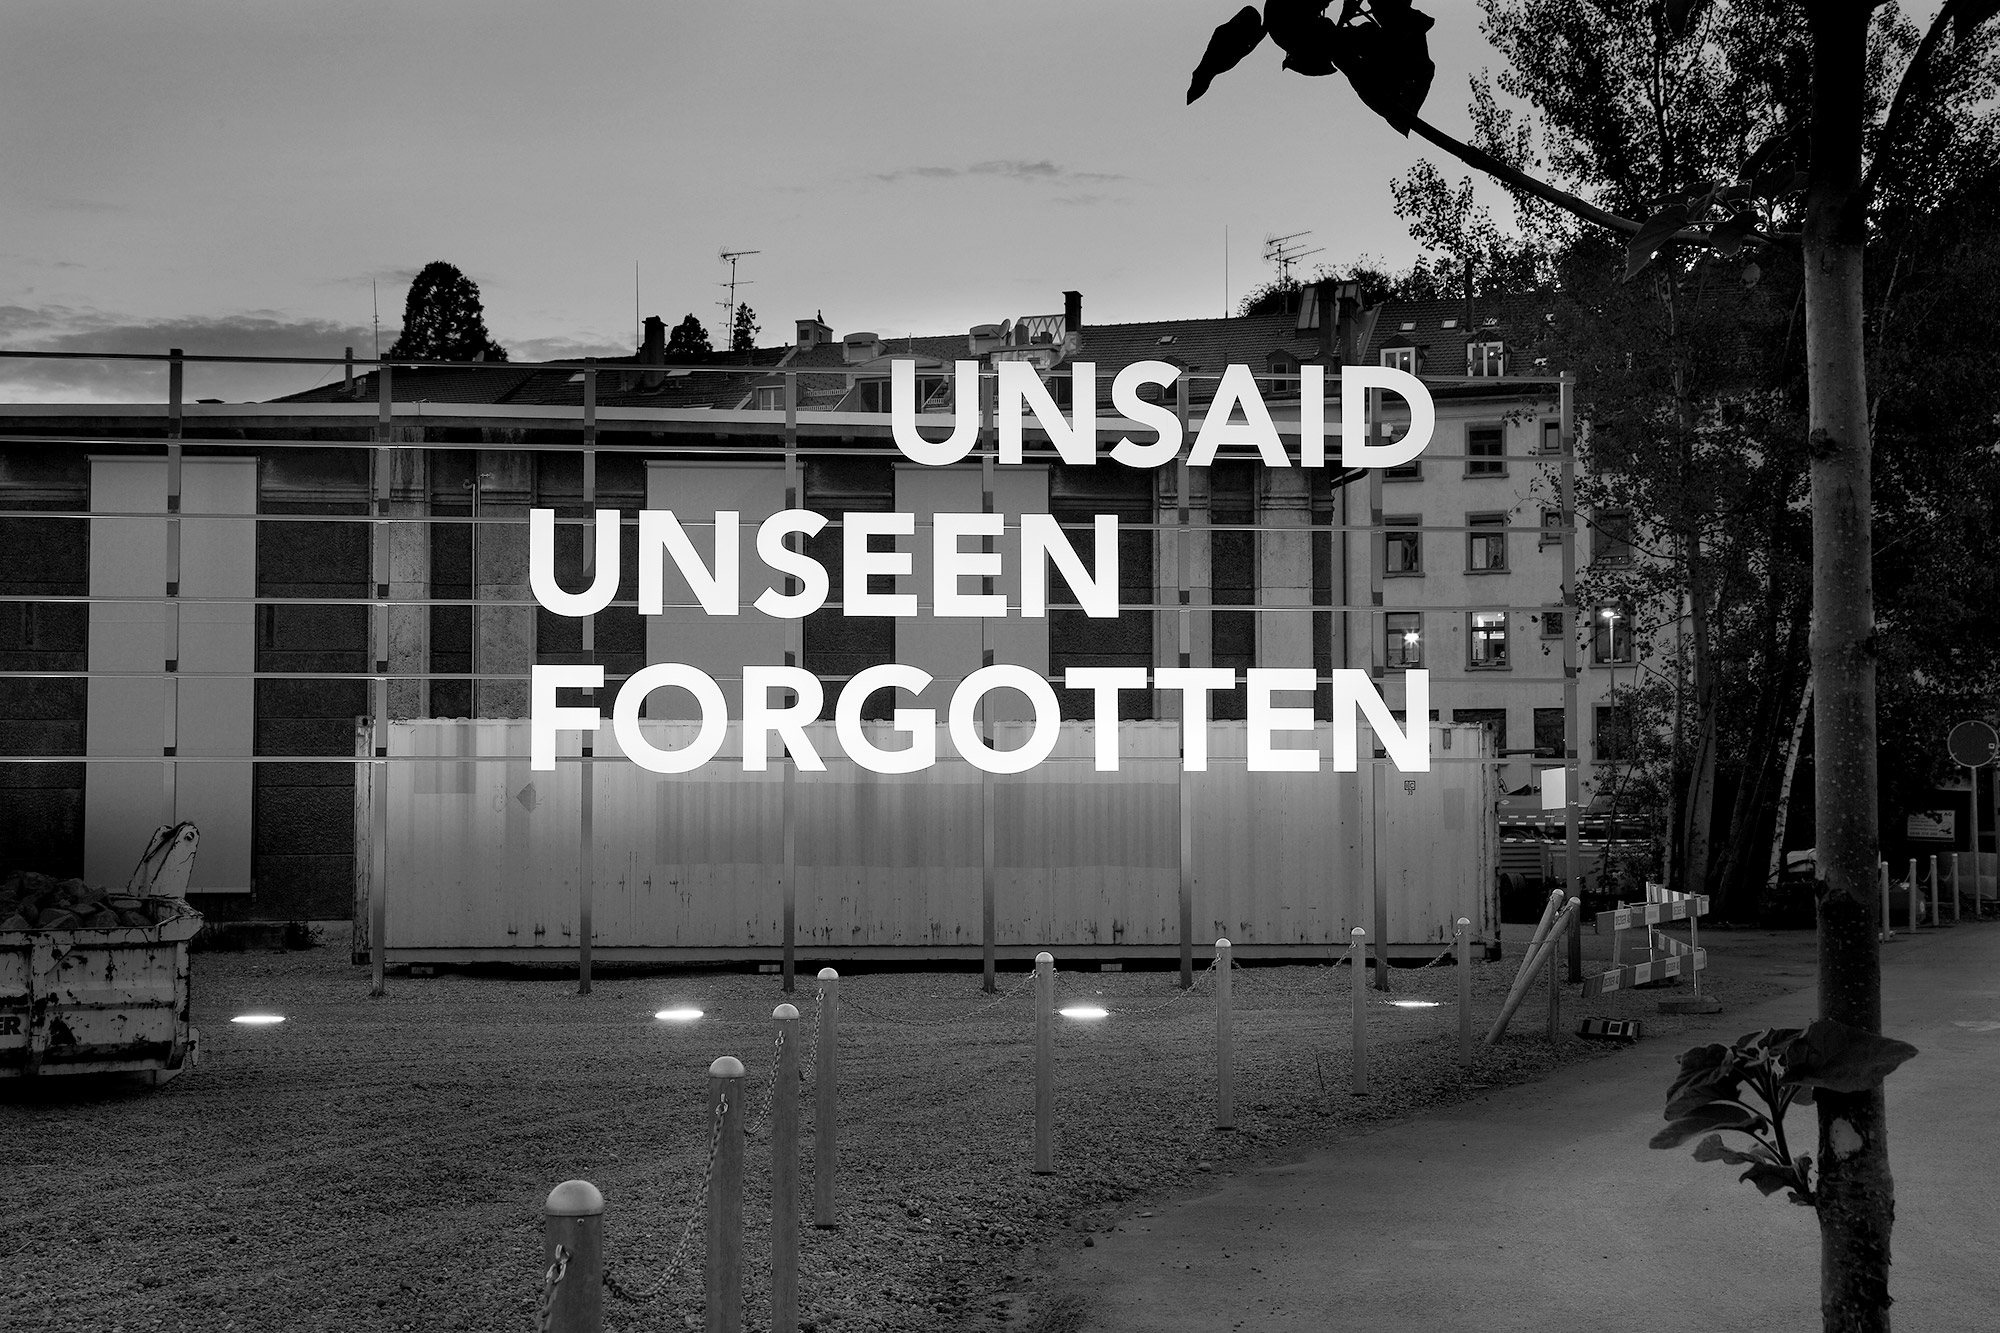 Famed, Untitled [Unsaid, Unseen, Forgotten]